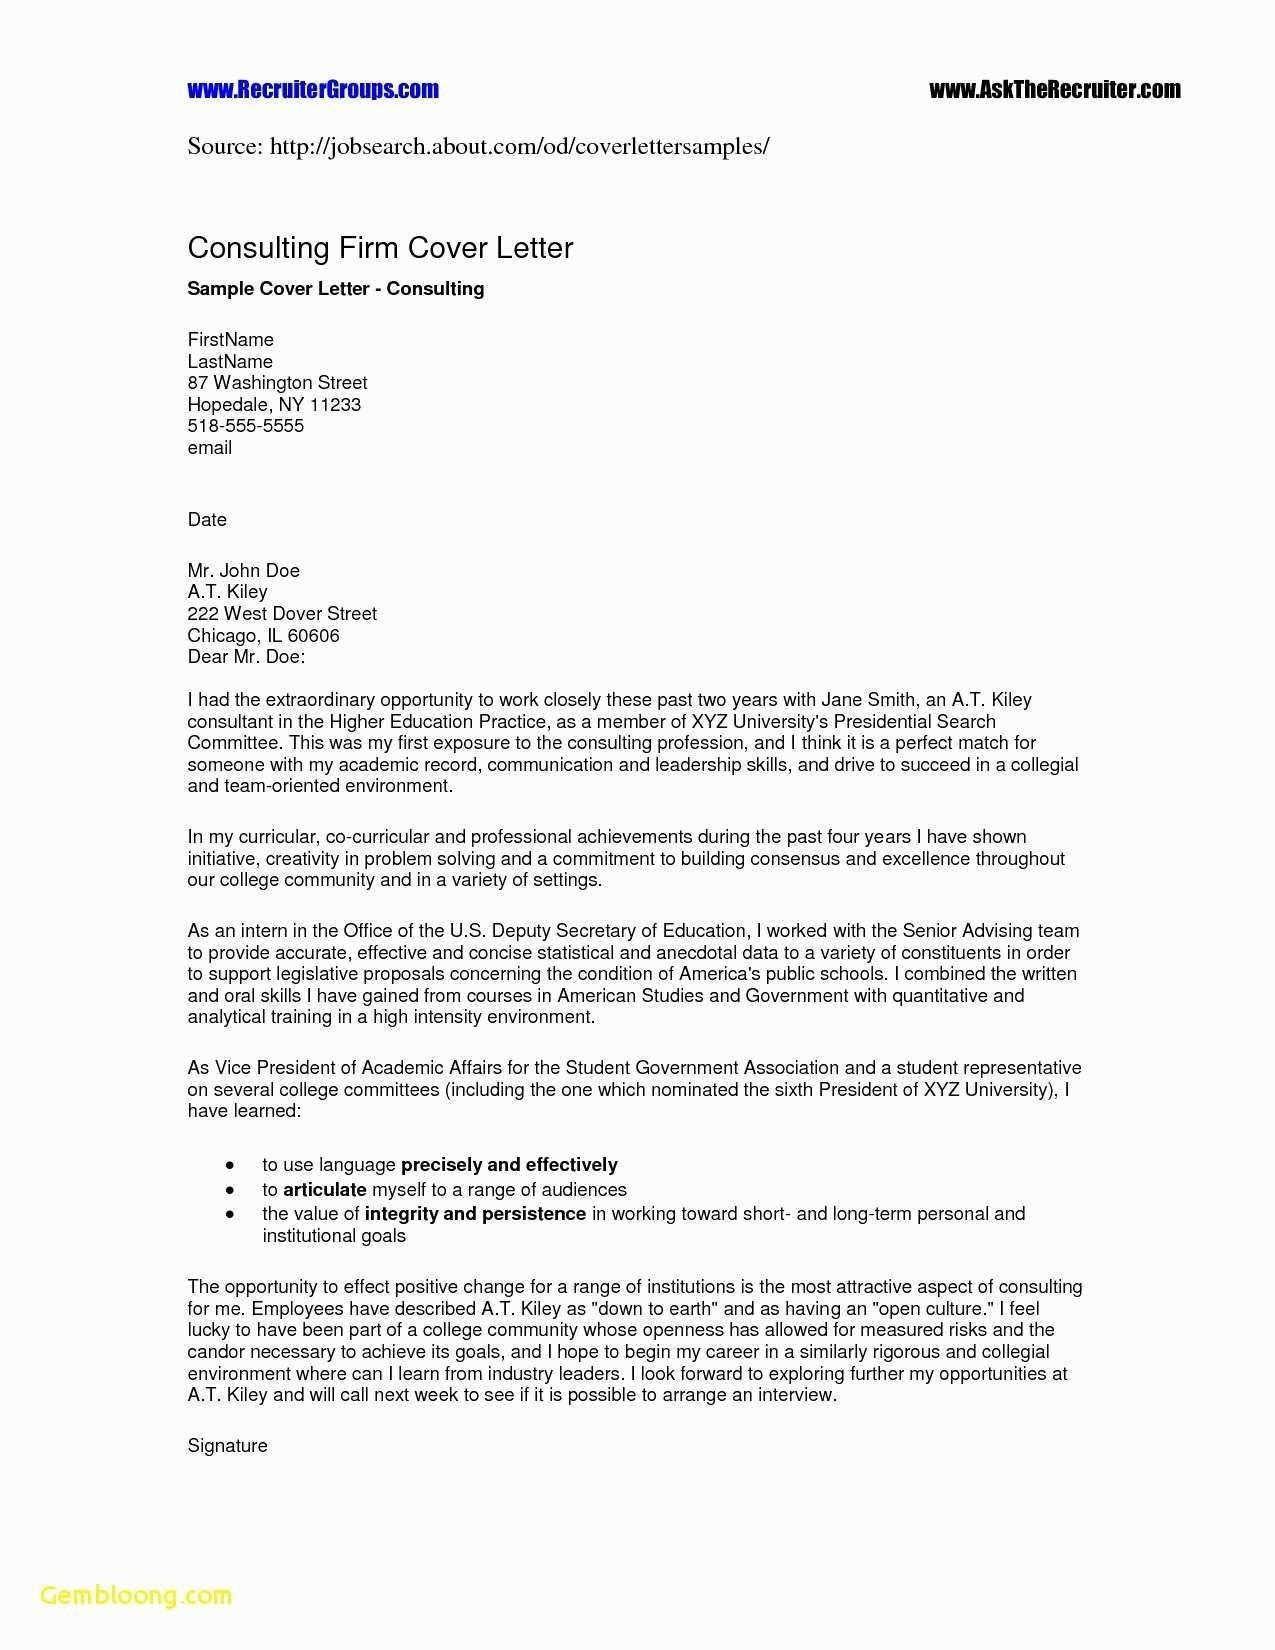 Cover Letter Template Fill In Examples | Letter Template ...